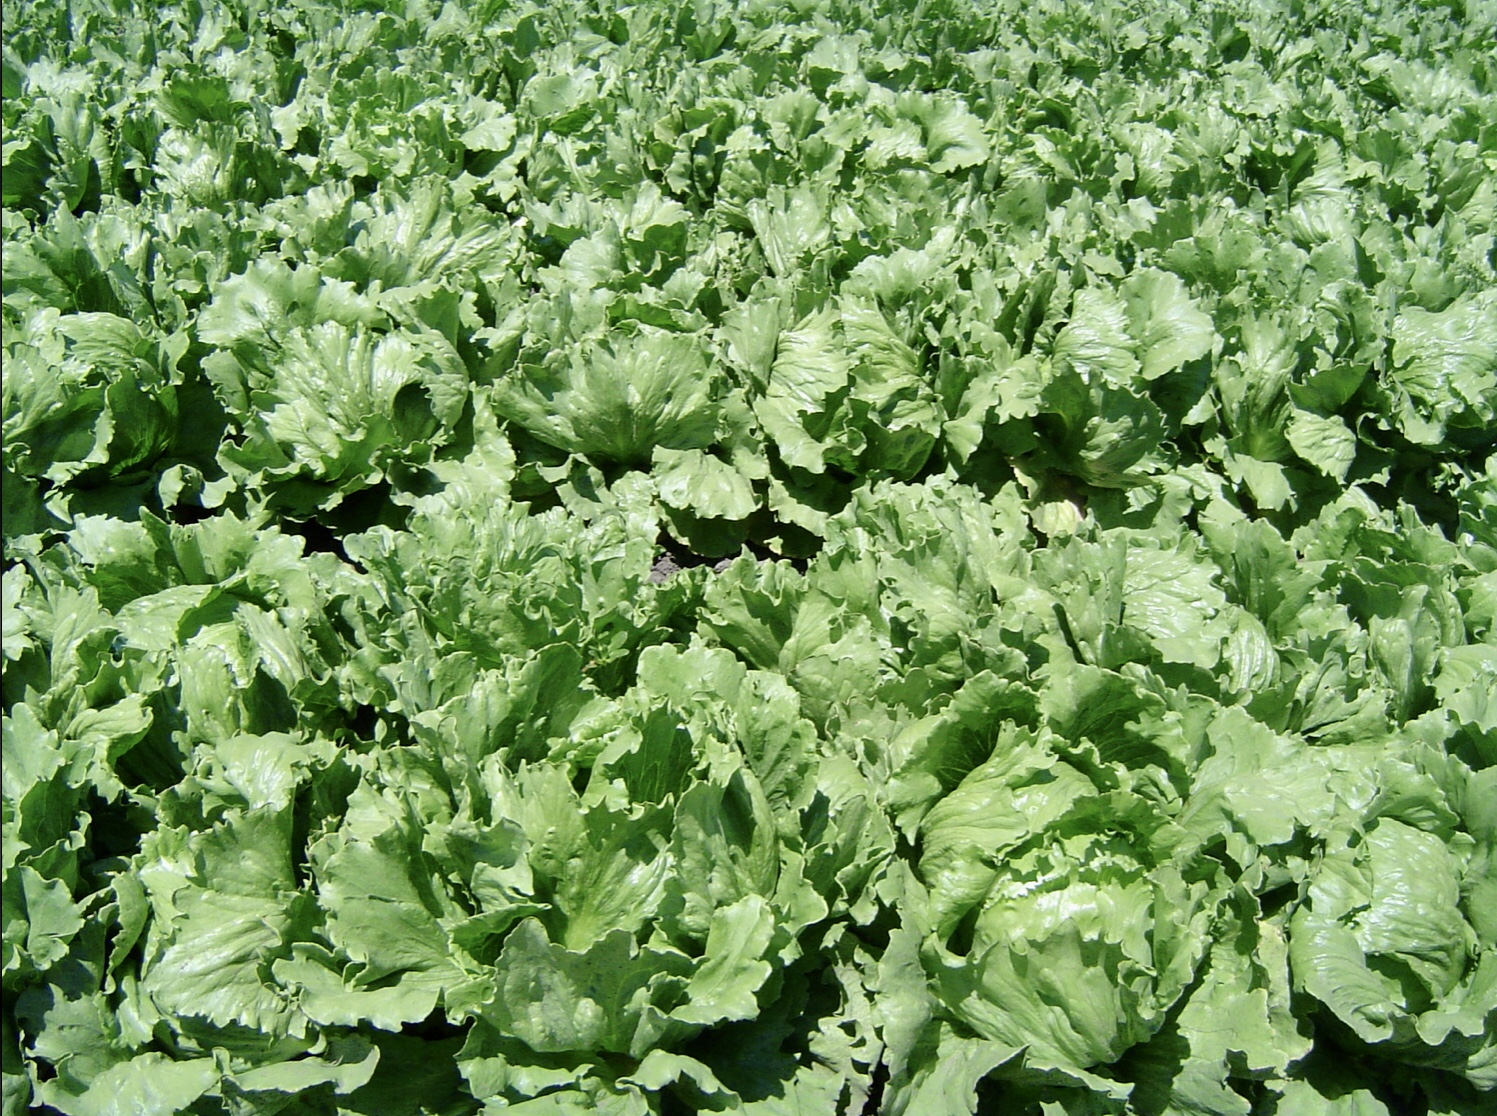 A field of iceberg lettuce